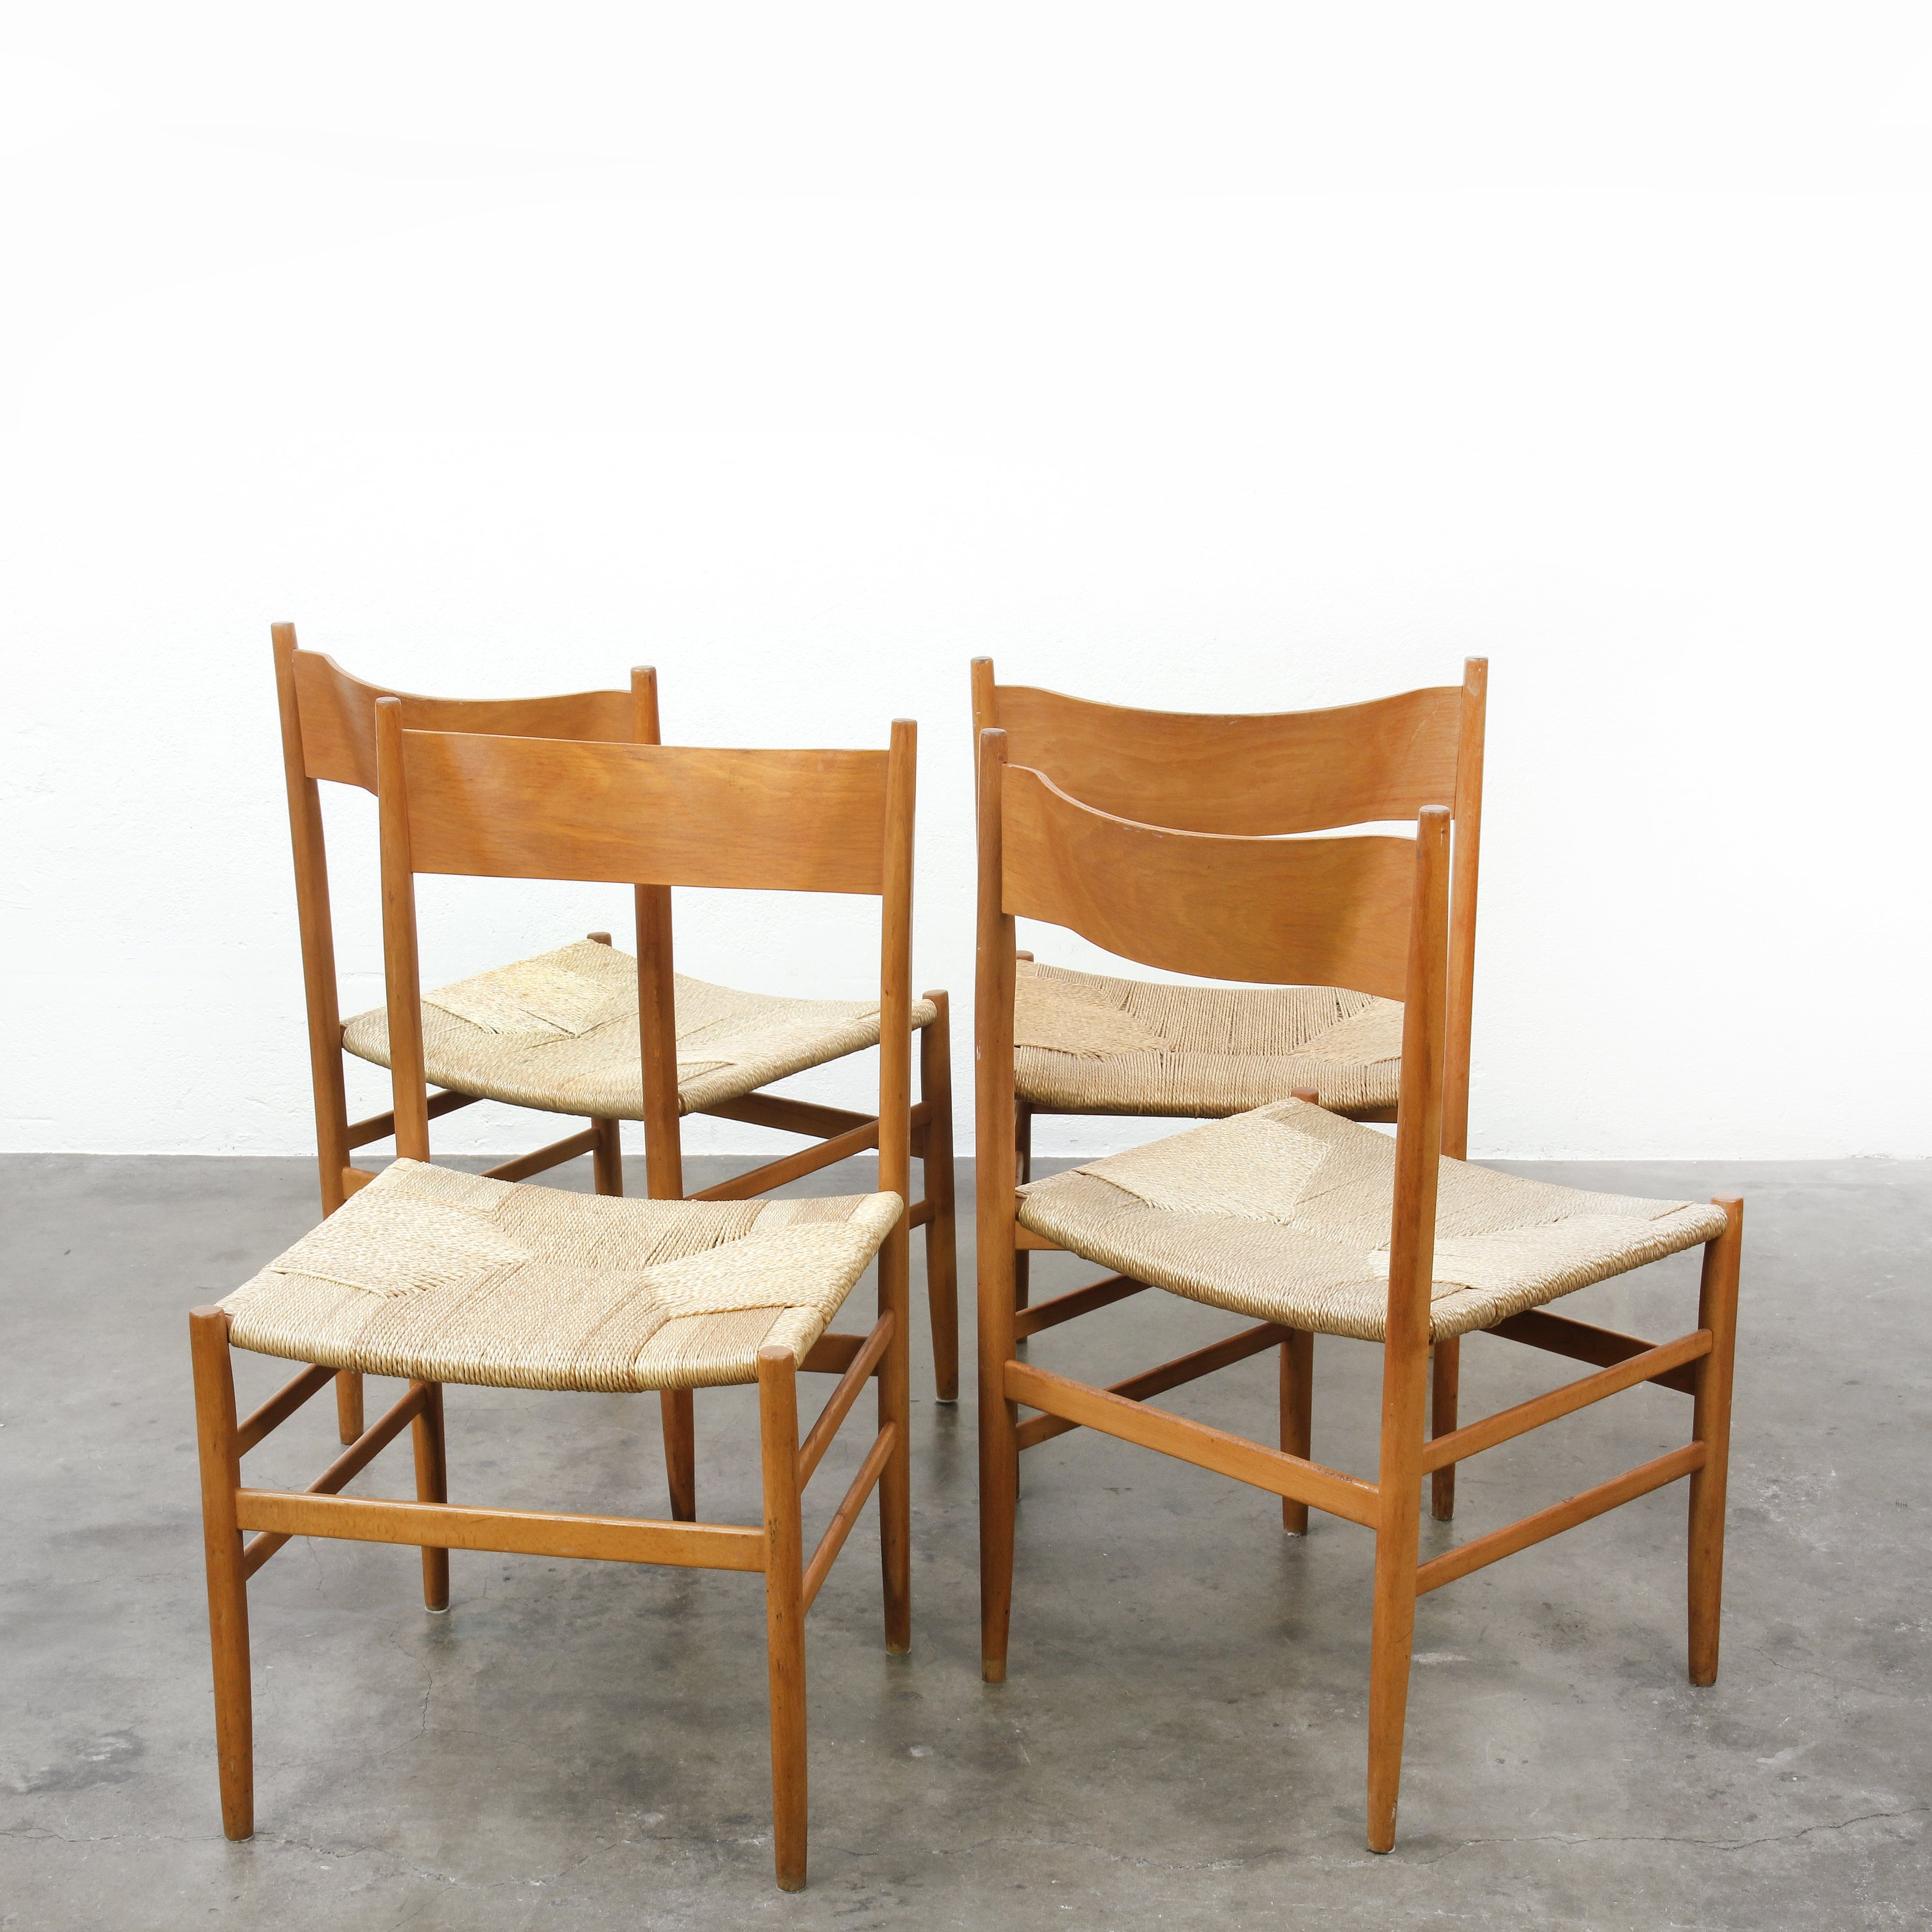 Set Of 4 Wooden Chairs With Artificial Cane Seats 1960s